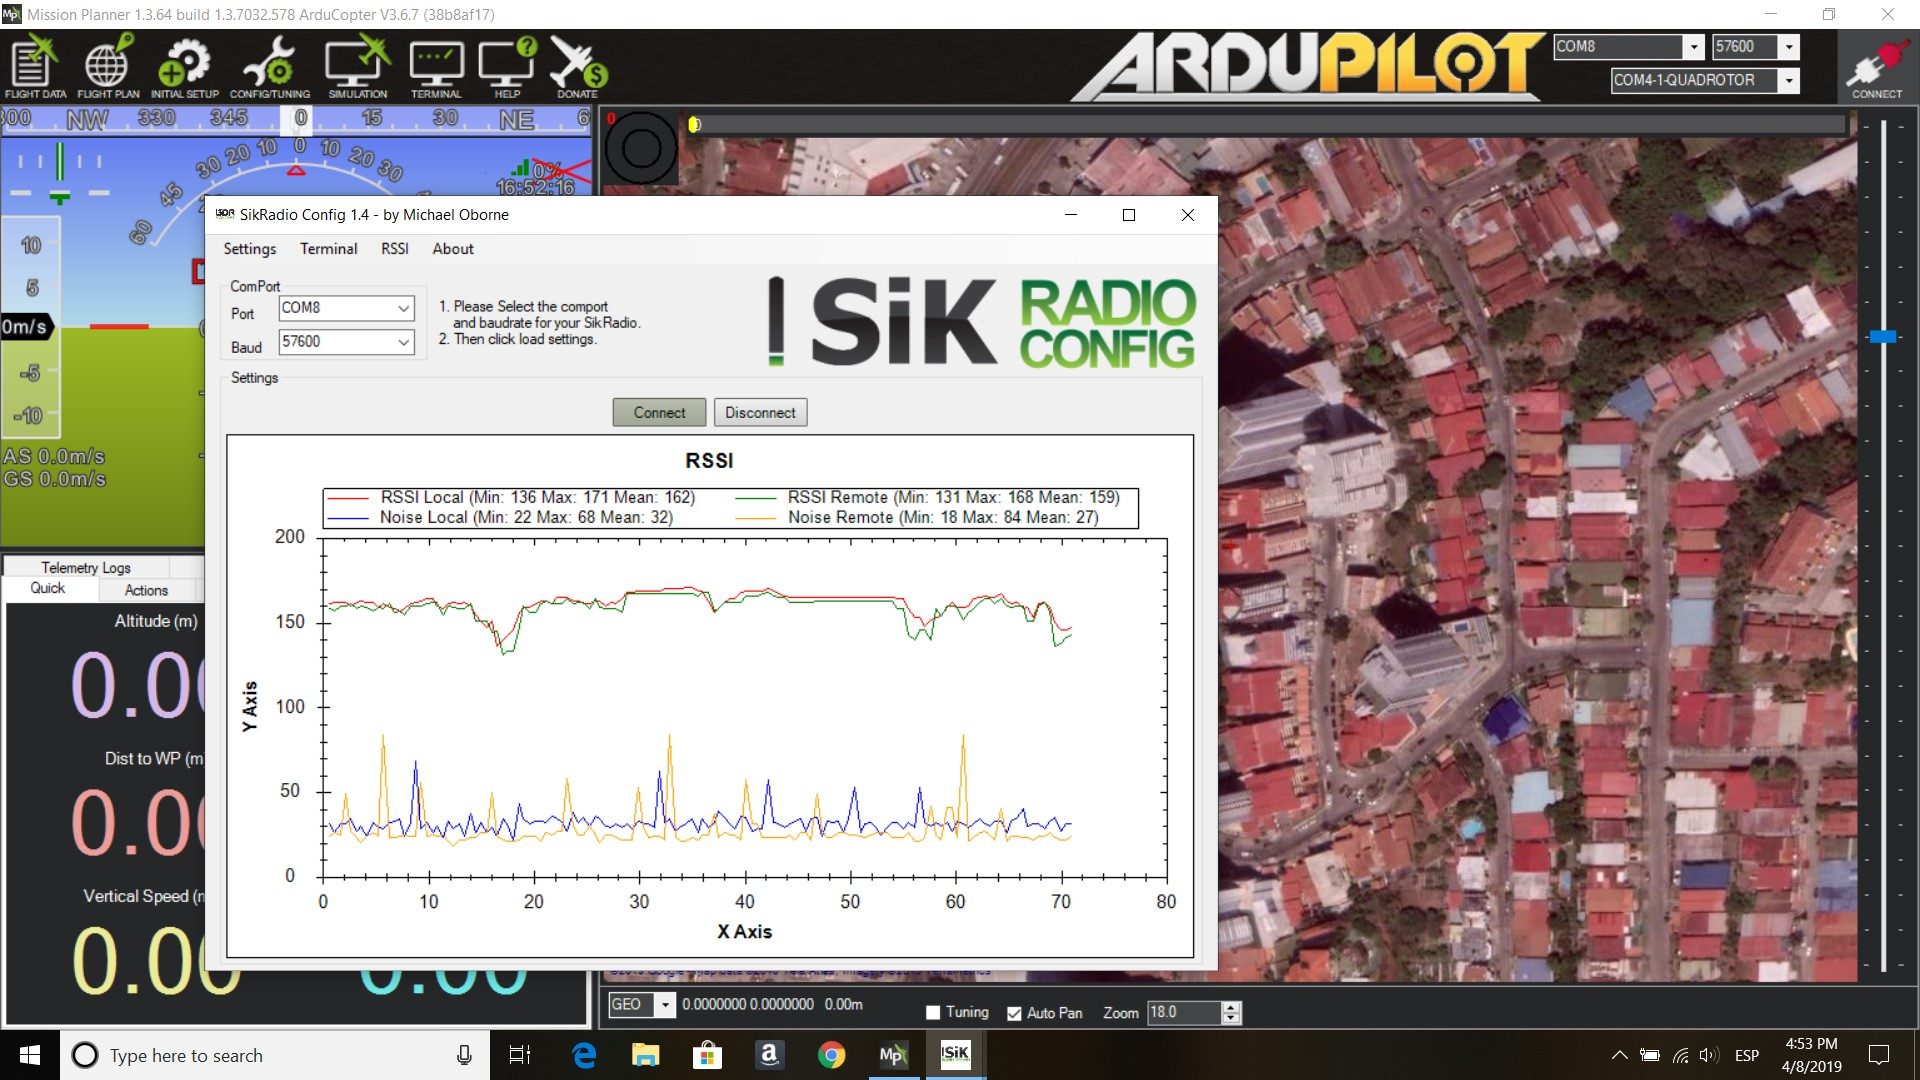 Sik Radio is not connecting through mission planner - Radios